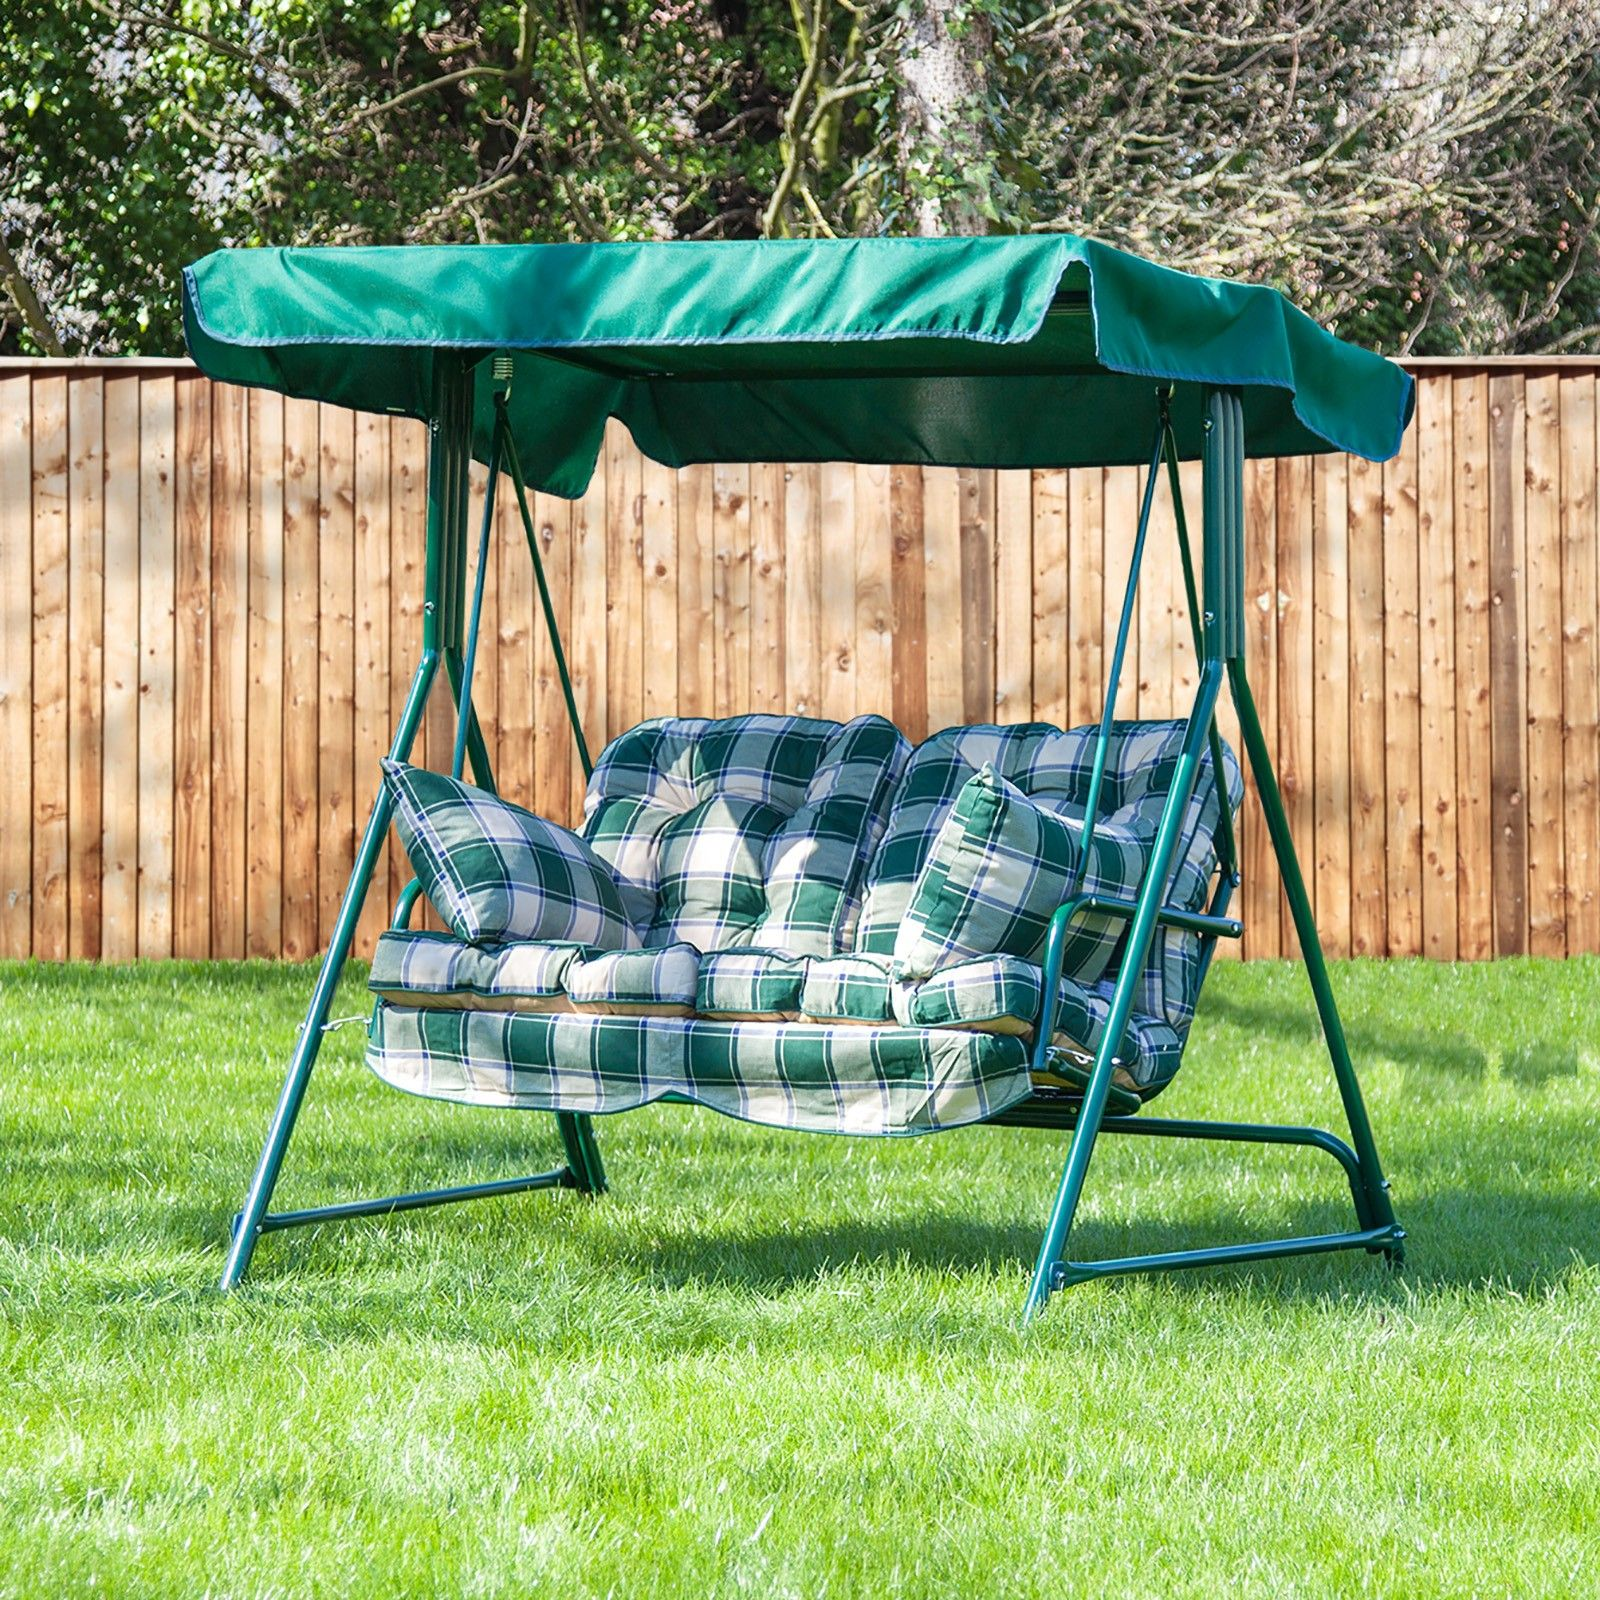 Mosca 2 Seater Swing Seat Green Frame With Classic Cushions Swing Seat Classic Cushions Luxury Cushions